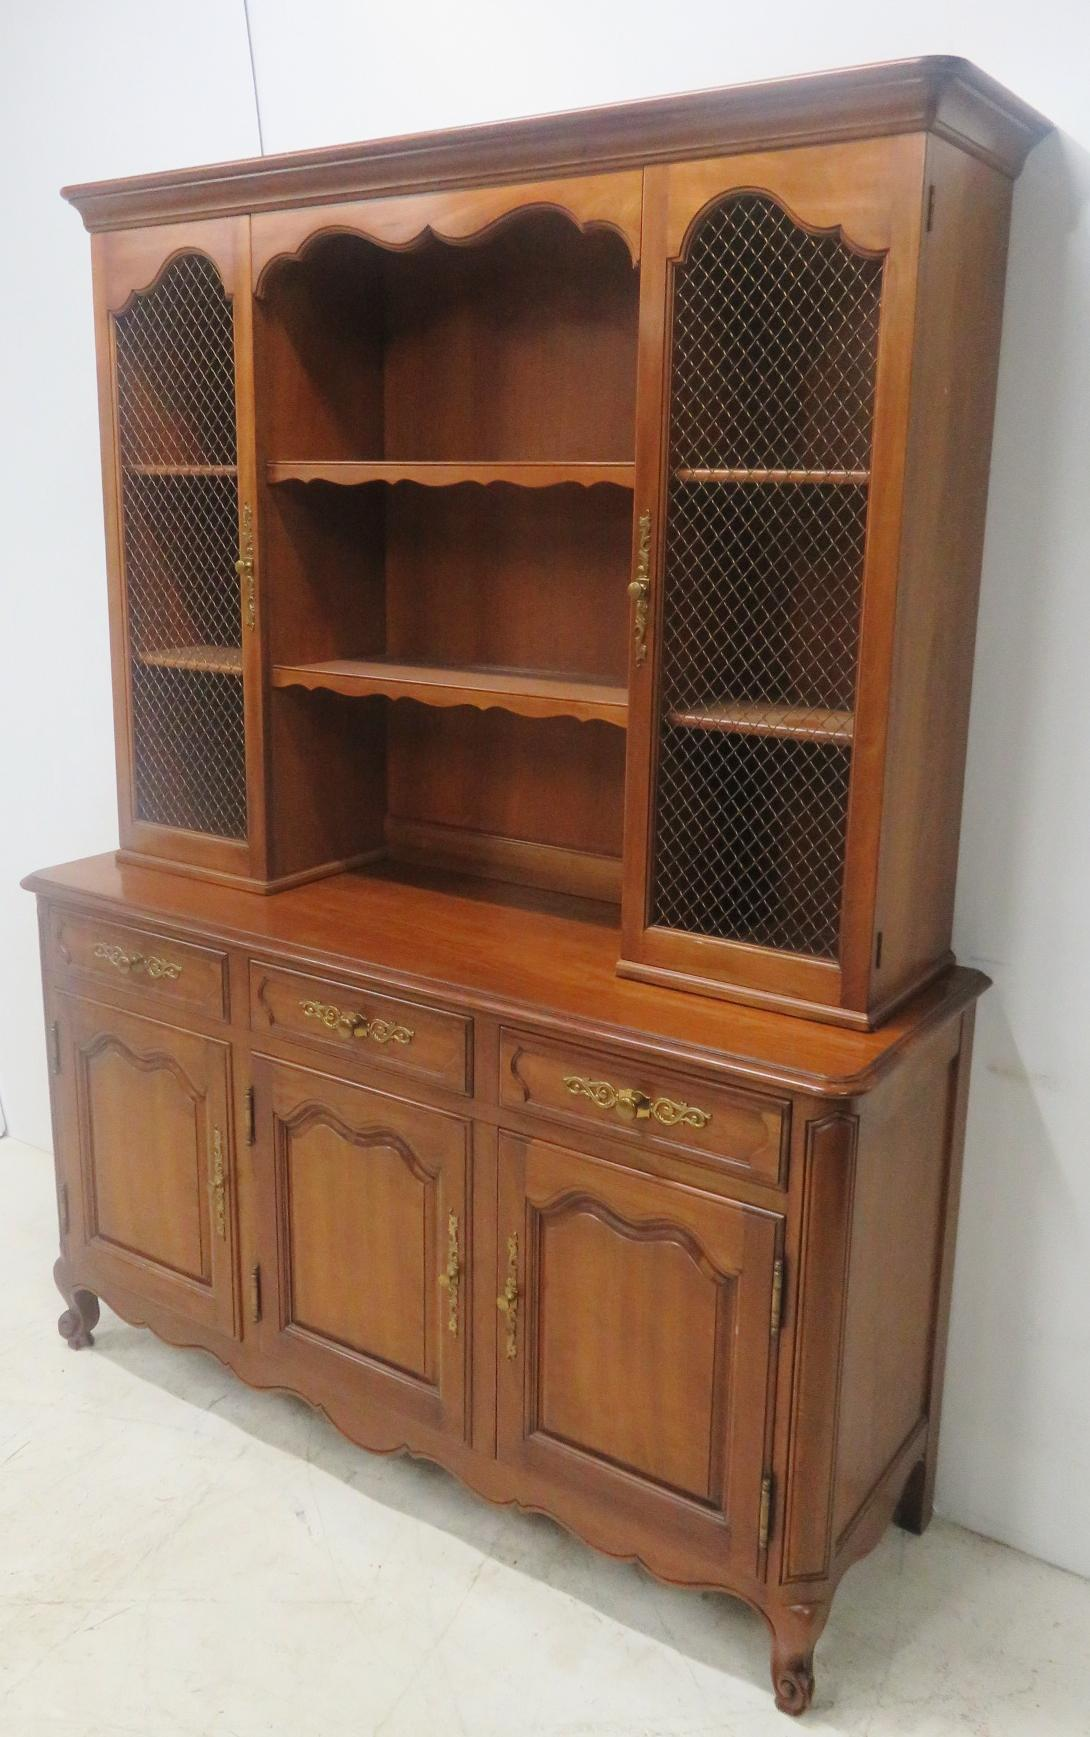 Etonnant Kindel Cherry French Style Open China Cabinet For Sale   Image 10 Of 10